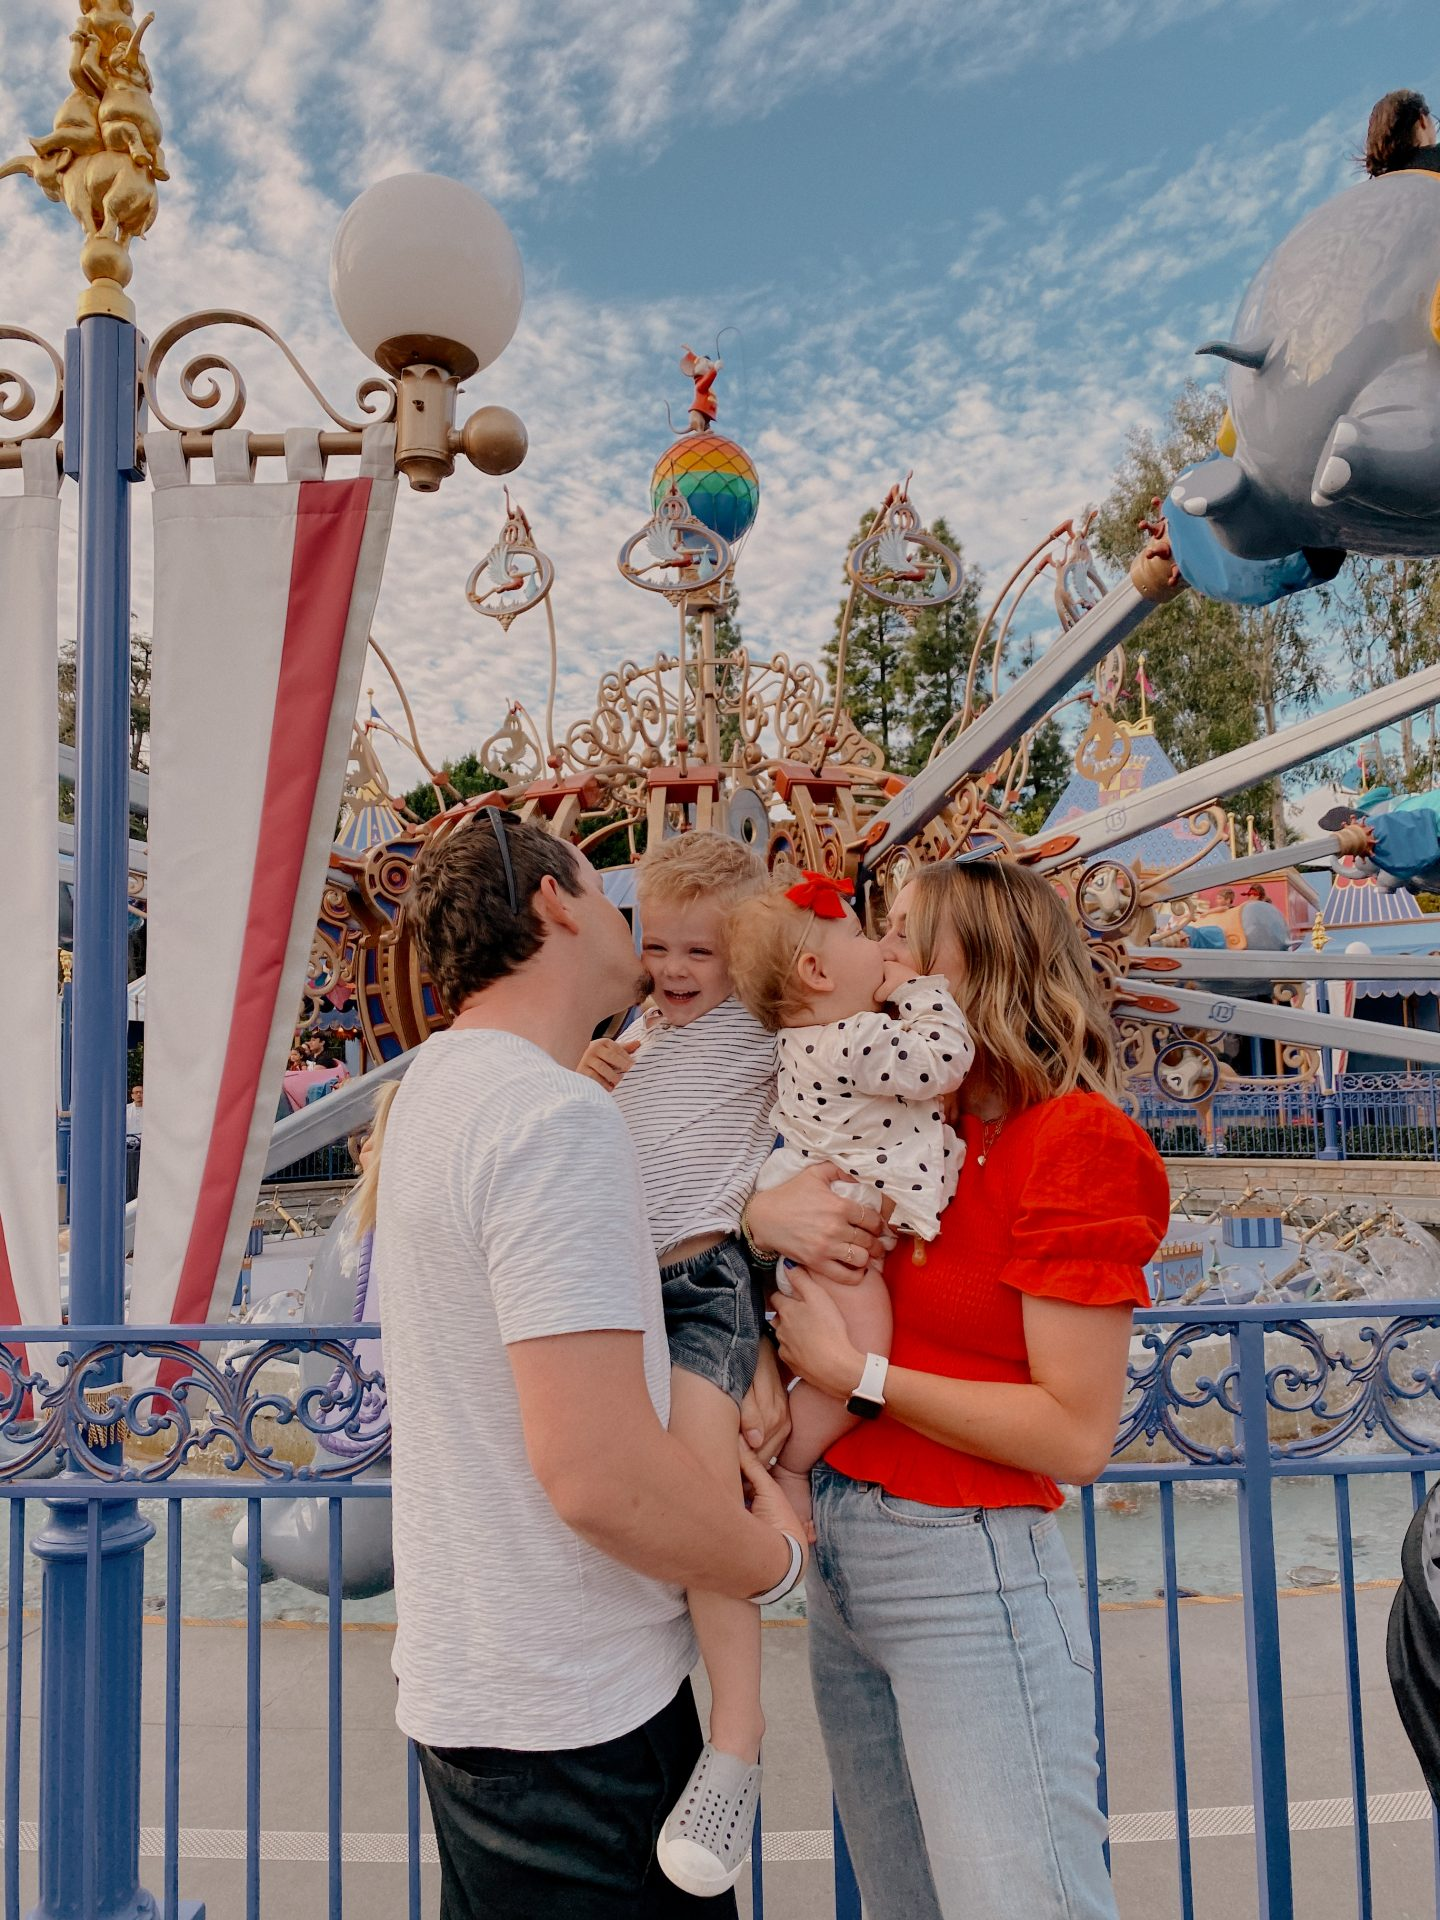 TOP 10 BEST DISNEYLAND TIPS FOR YOUR FAMILY featured by top San Diego blog, Navy Grace | Disneyland Tips by popular San Diego lifestyle blog, Navy Grace: image of a mom and dad kissing their two kids in front of the Dumbo ride at Disneyland.